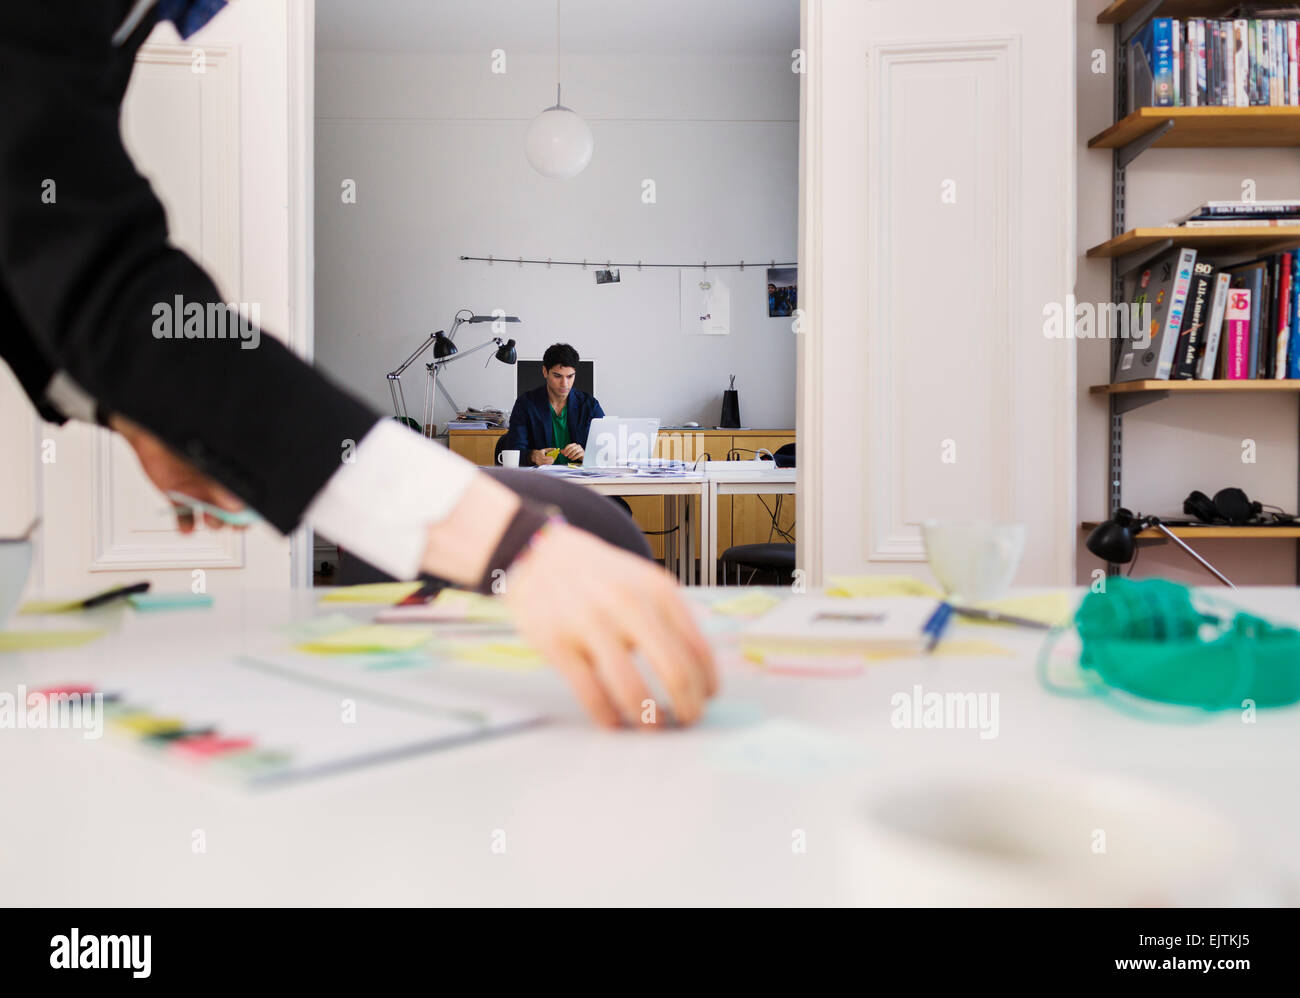 Cropped image of businessman's hand holding reminder notes while colleague working in background - Stock Image